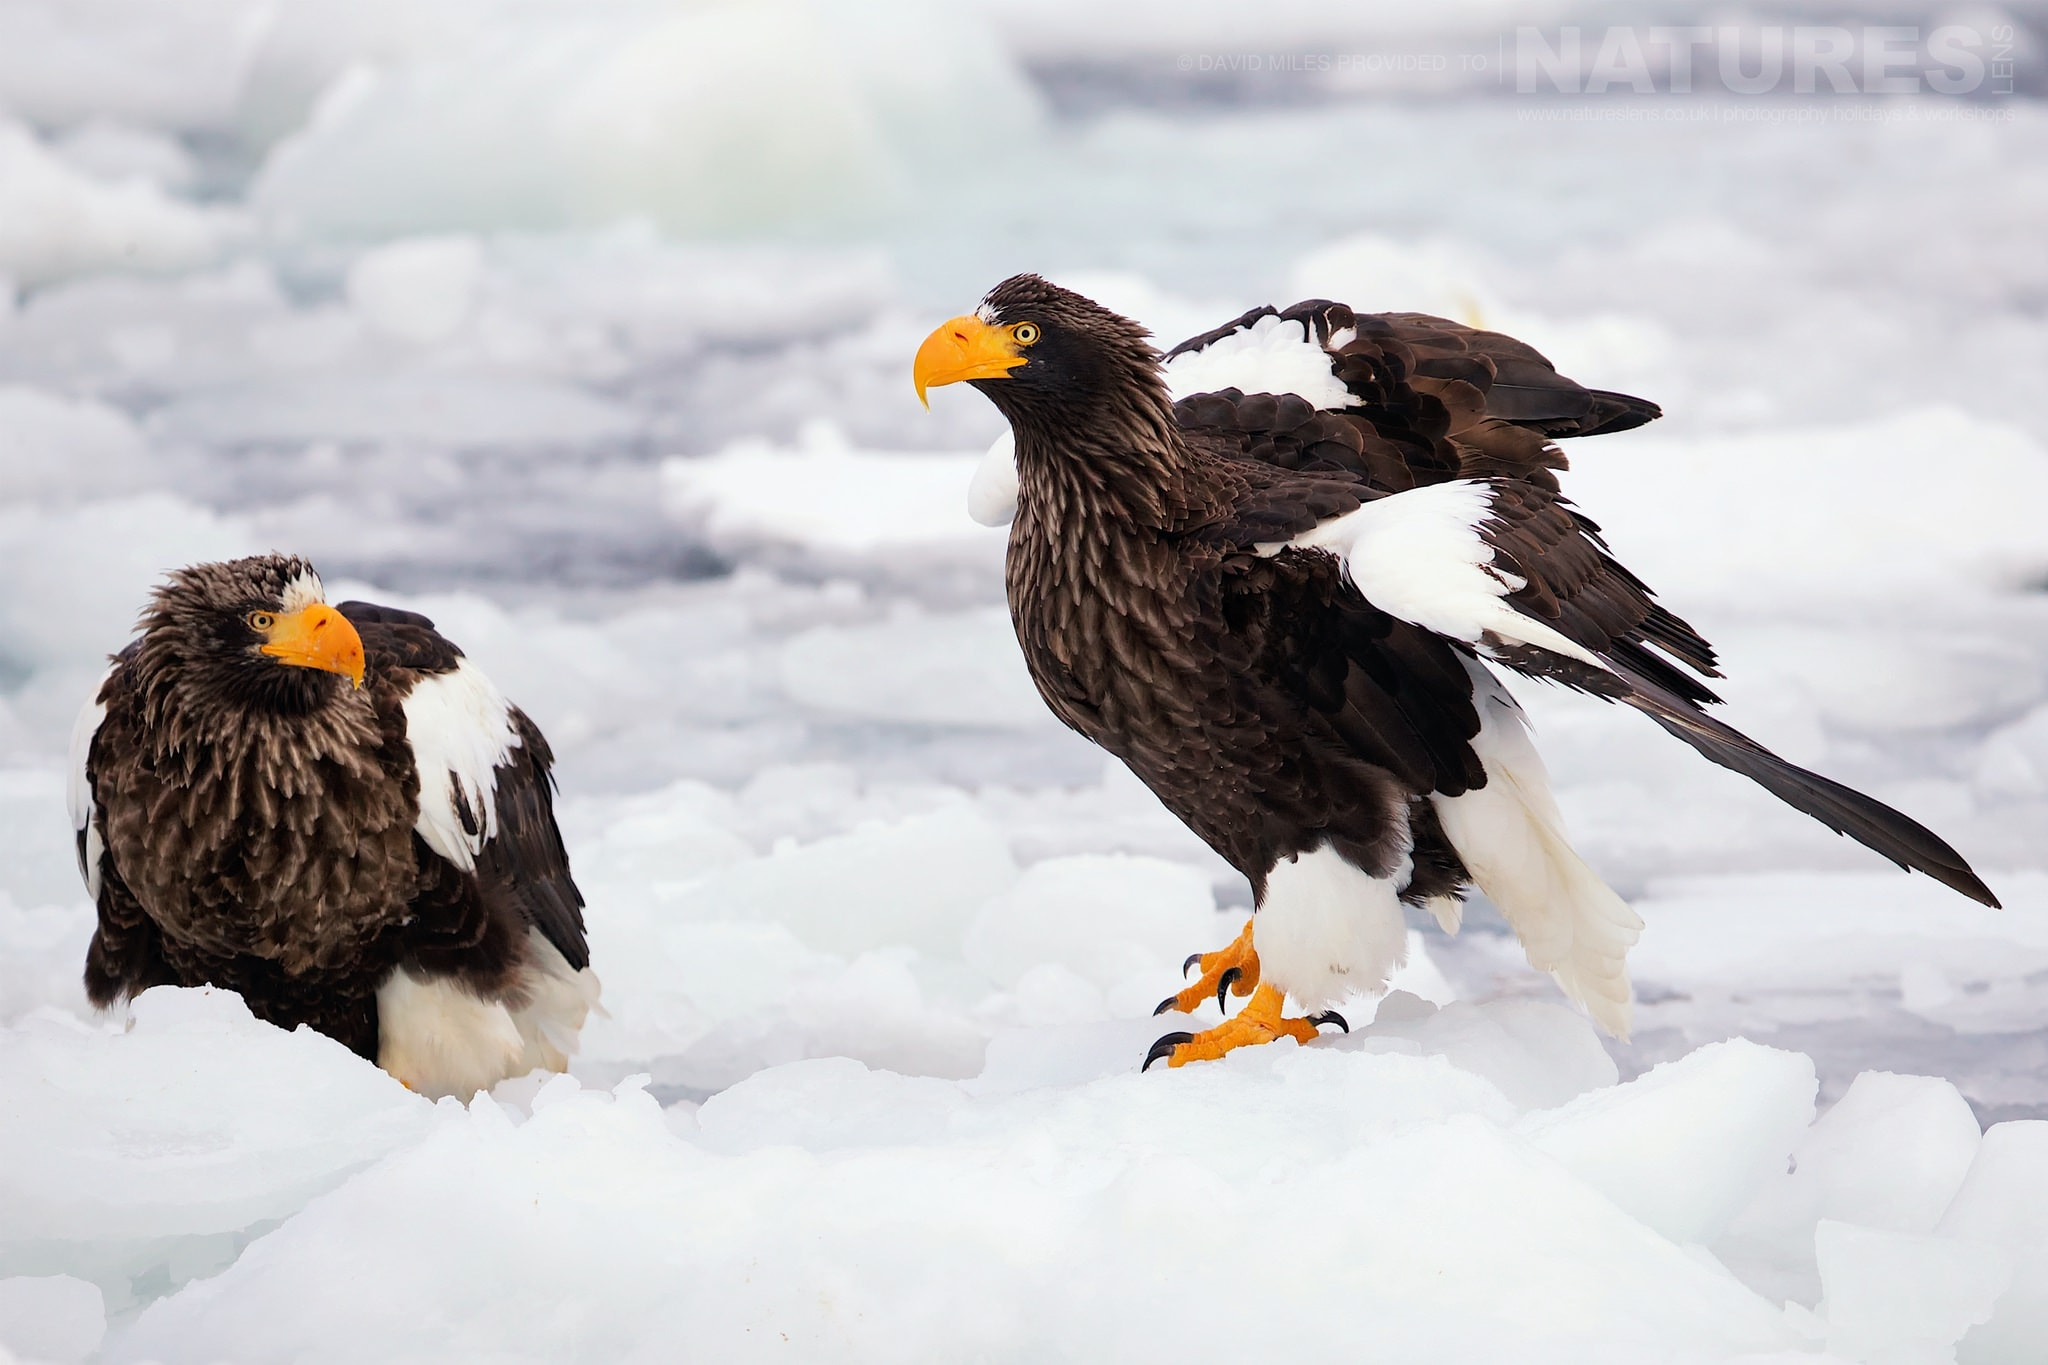 A Pair Of Steller's Sea Eagle Perched On The Drift Ice Outside Rausu   Photographed During The Winter Wildlife Of Japan Photography Holiday